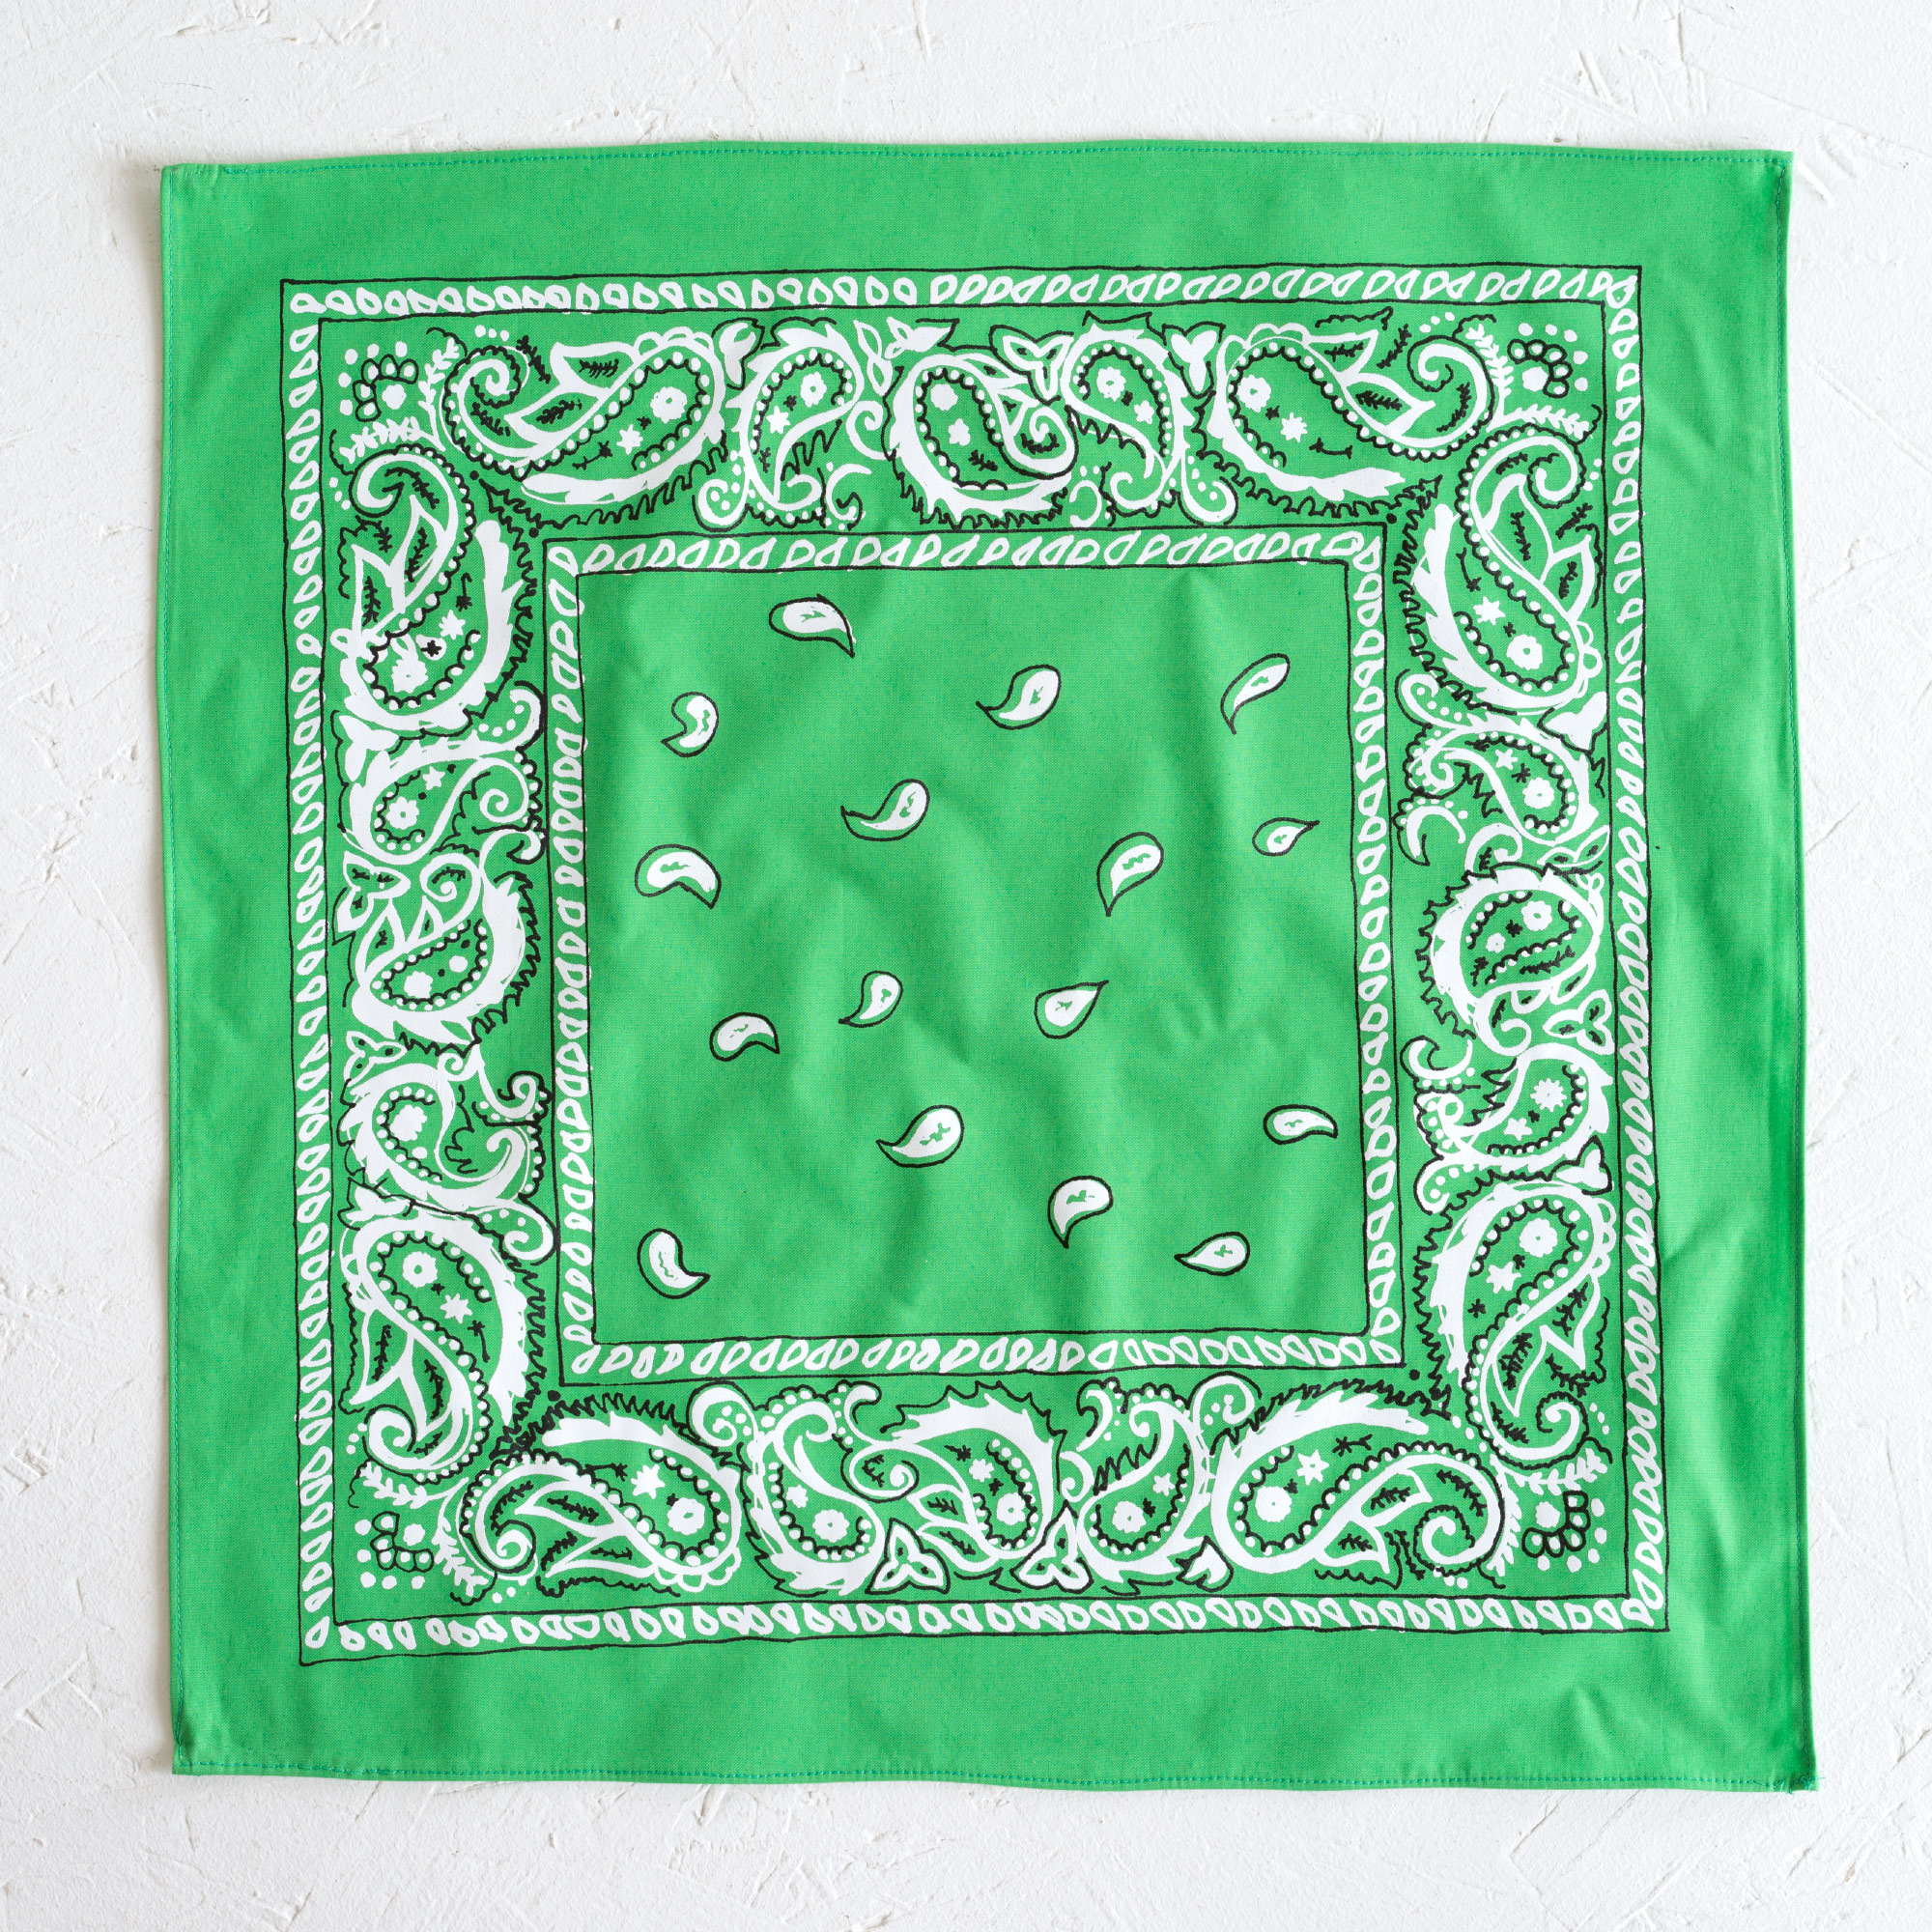 Nancy Davidson, *Hanky Code* (Kelly Green), 2016, Two color silkscreen on hand cut & sewn cotton, 17 x 17 inches (43.18 x 43.18 cm)